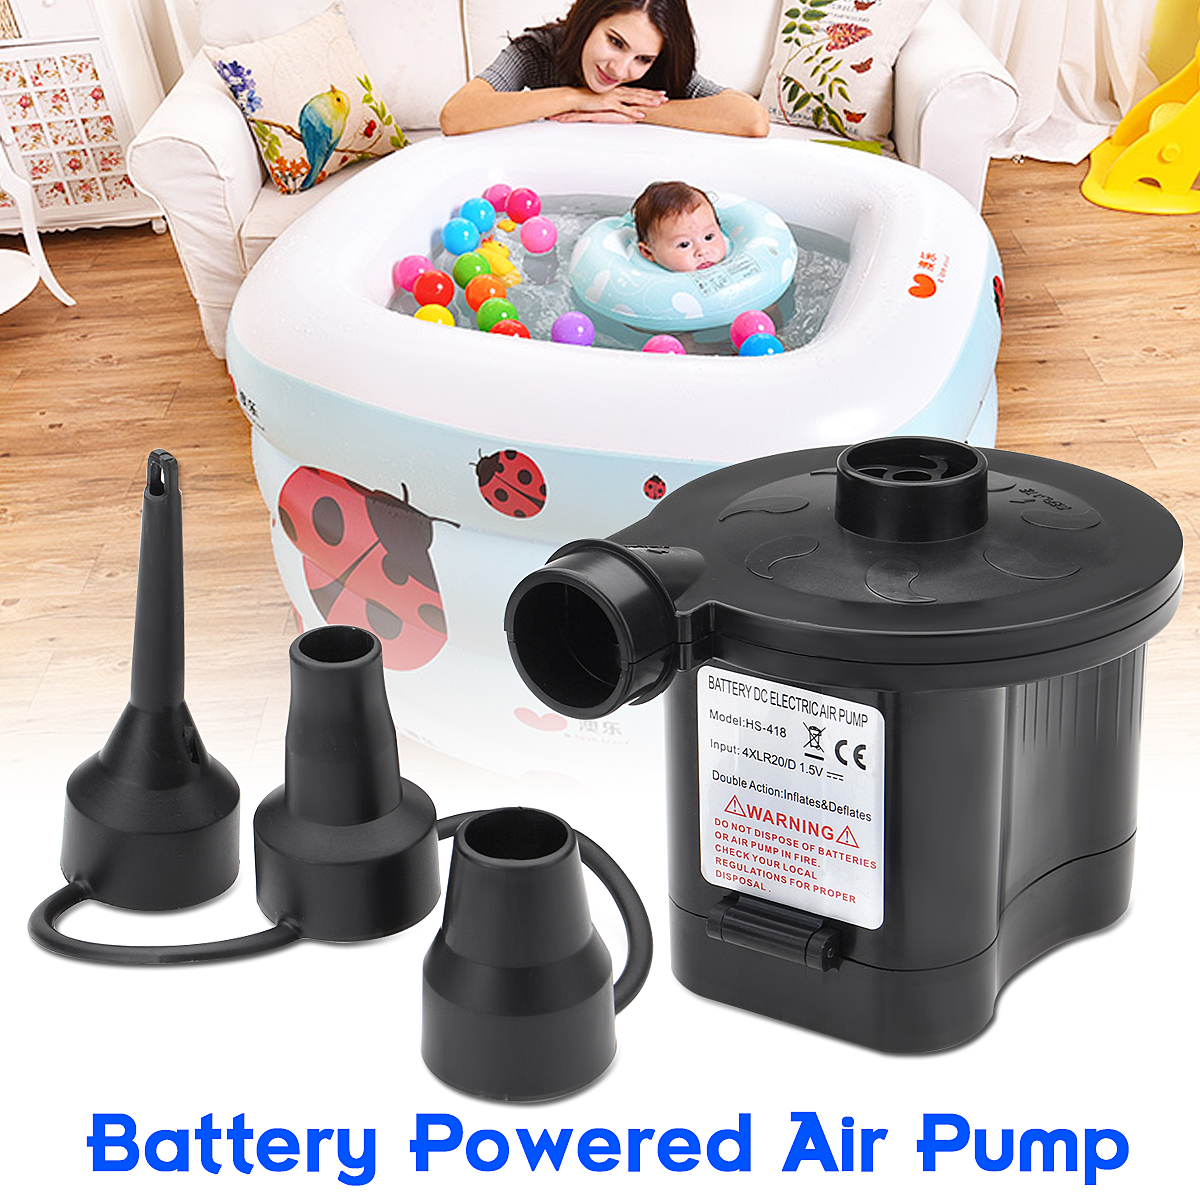 6V Portable Battery Powered Electric Air Pump Inflator with 3 Nozzles For Inflatable Toys Air Bed Boat ABS Air Pump Black dc 12v portable electric air pump air bed mattress boat car auto air inflatable pump for camping inflator with 3 nozzles mayitr